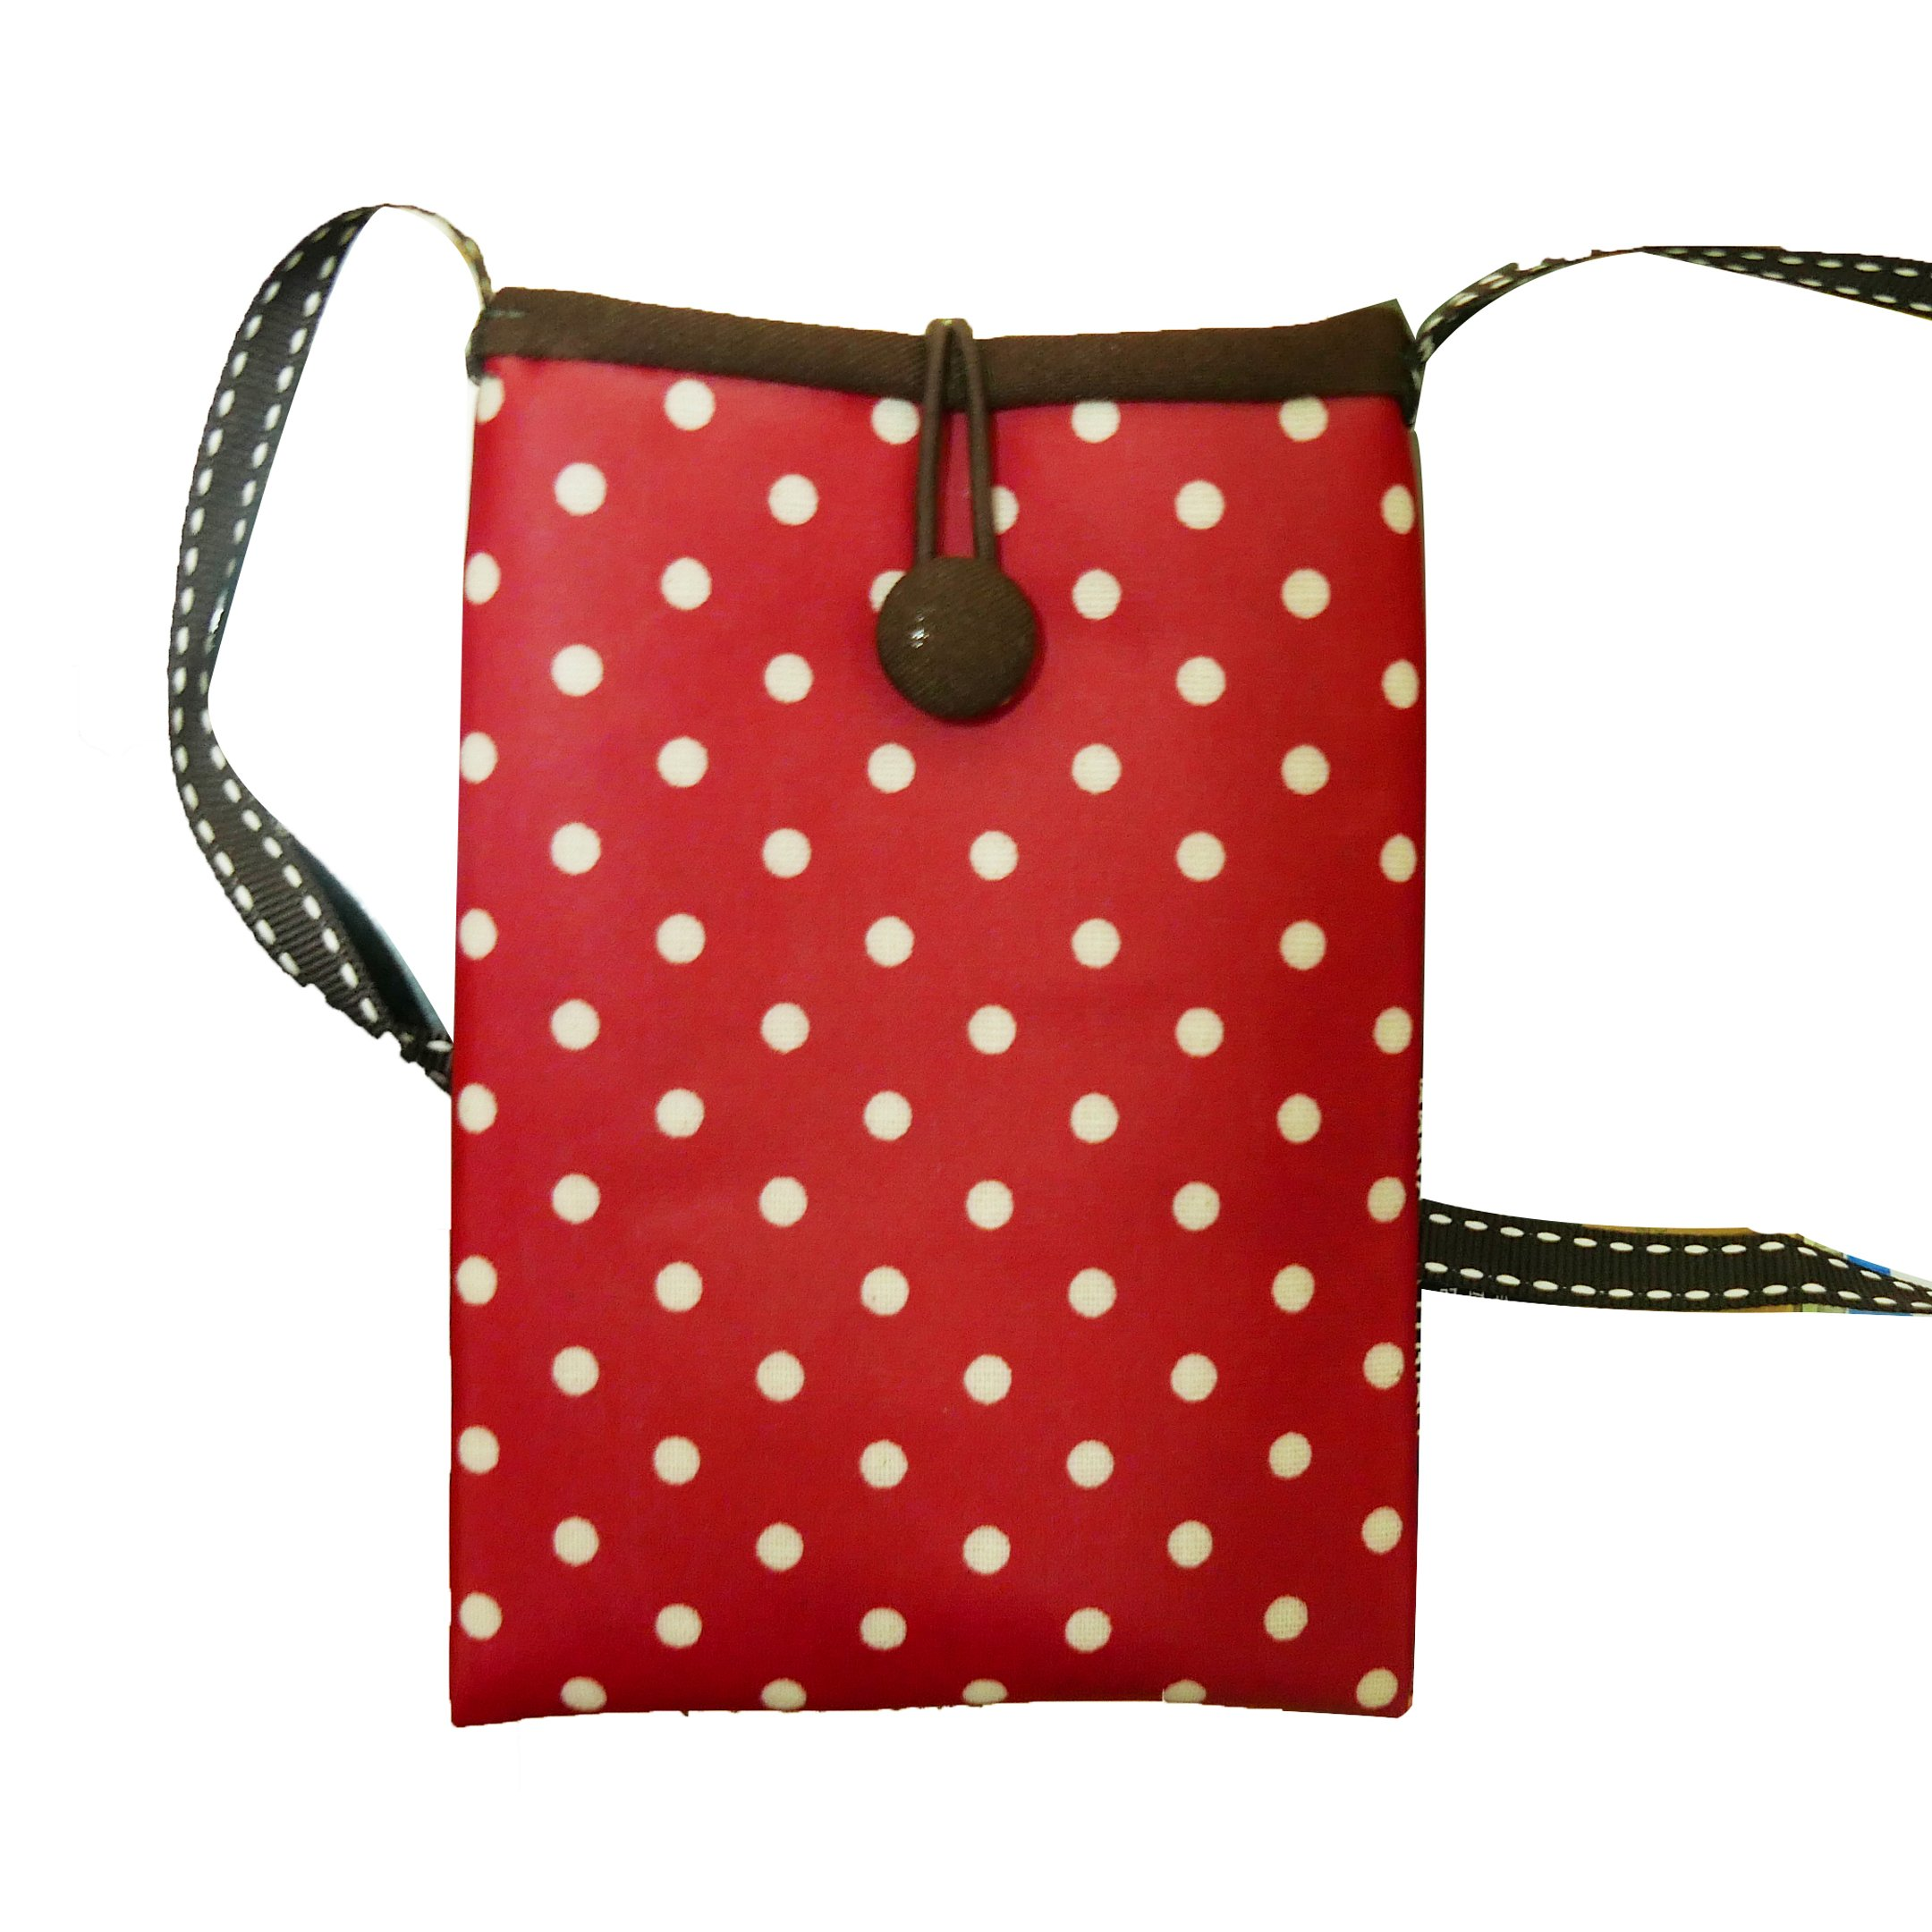 Crossbody Smartphone Pouch, Tainada Women Ladies Shockproof Cross Body Shoulder Travel Cell Phone Purse Bag for iPhone 8 Plus, X, Samsung S8, S8+. Google Pixel 2 XL, LG G6 and more! Polka Dot (Red)